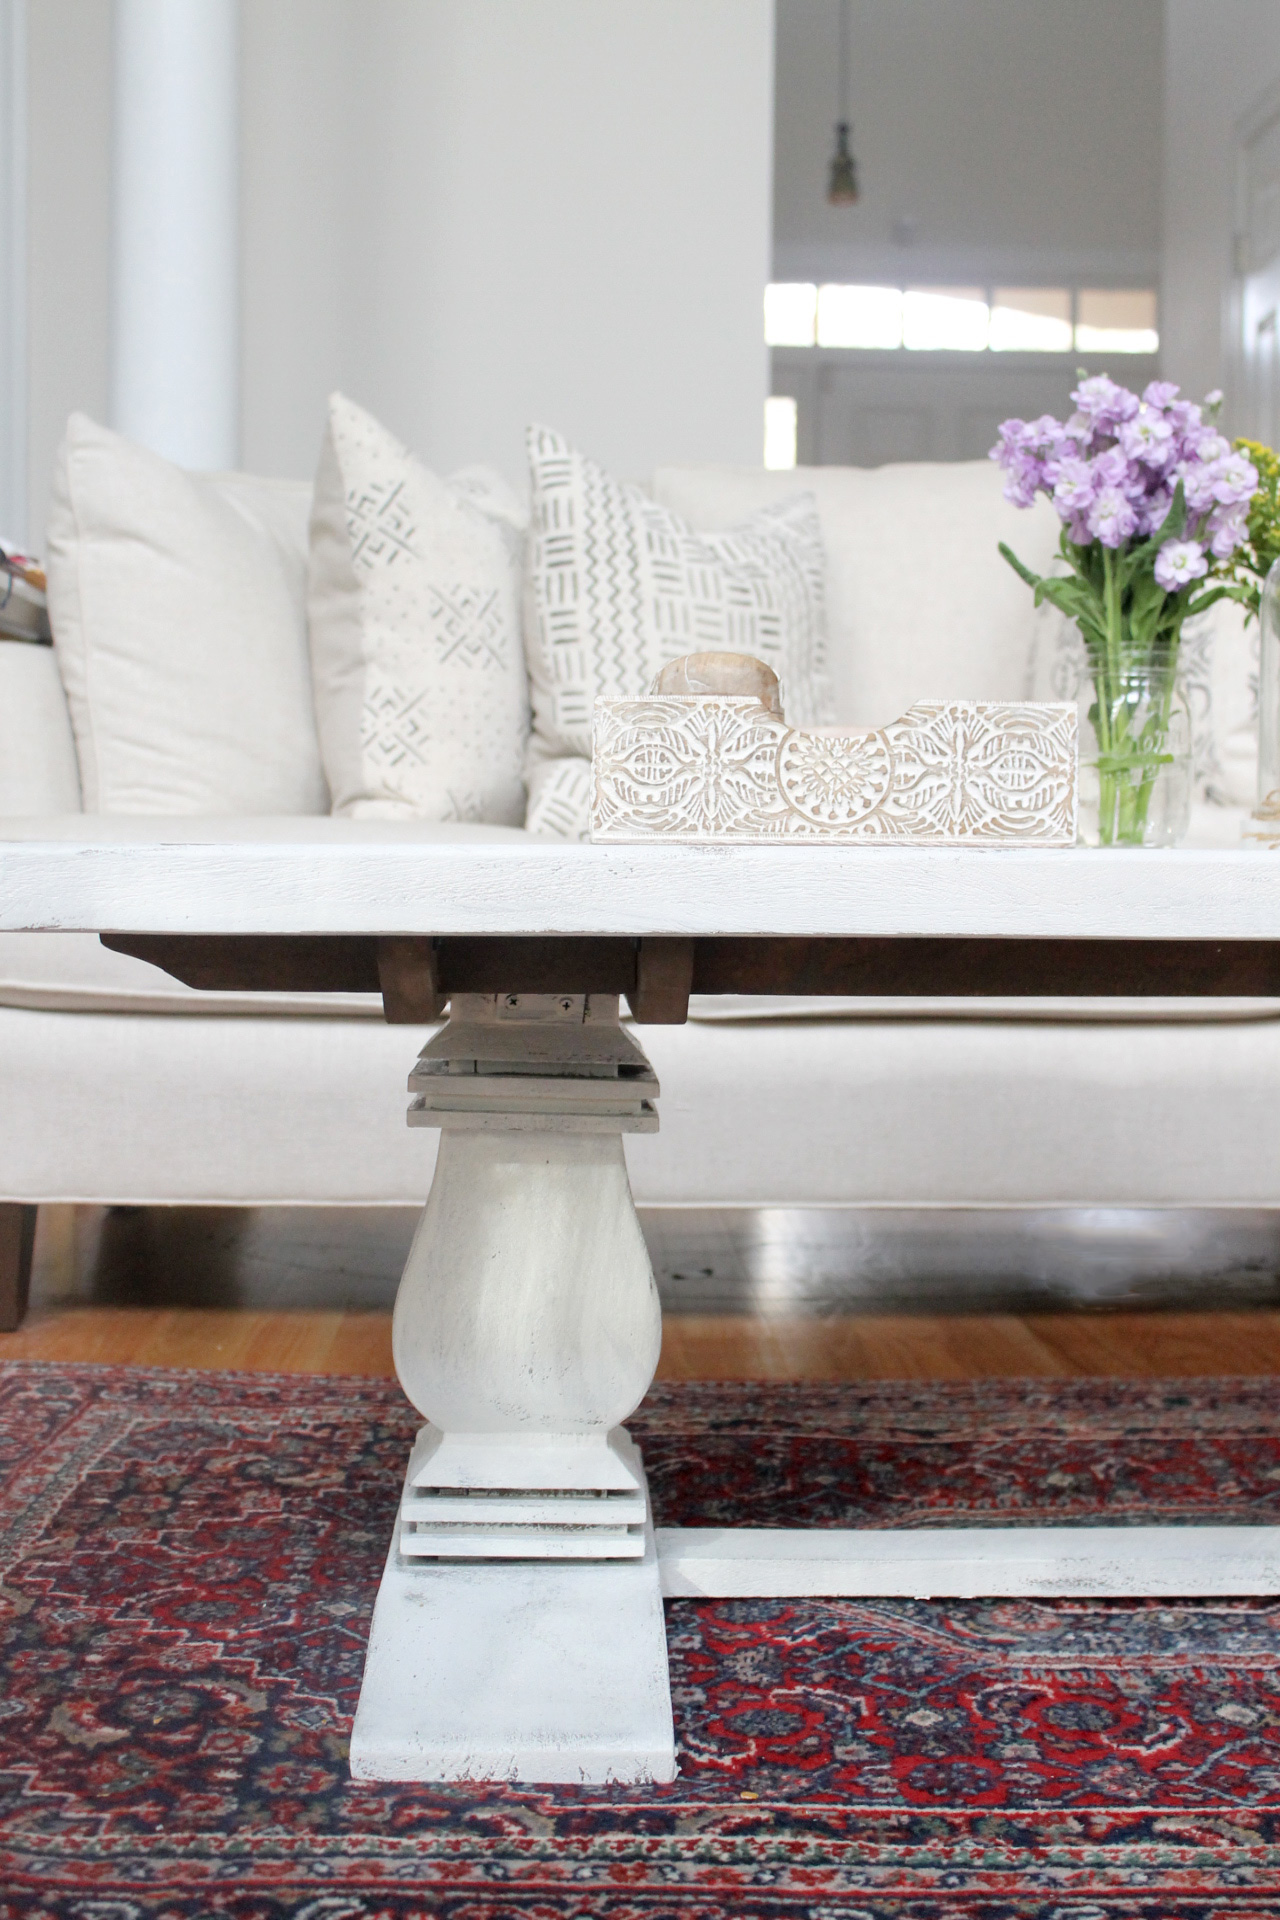 How To Distress A Shabby Chic Coffee Table (the Easy Way!) By NC